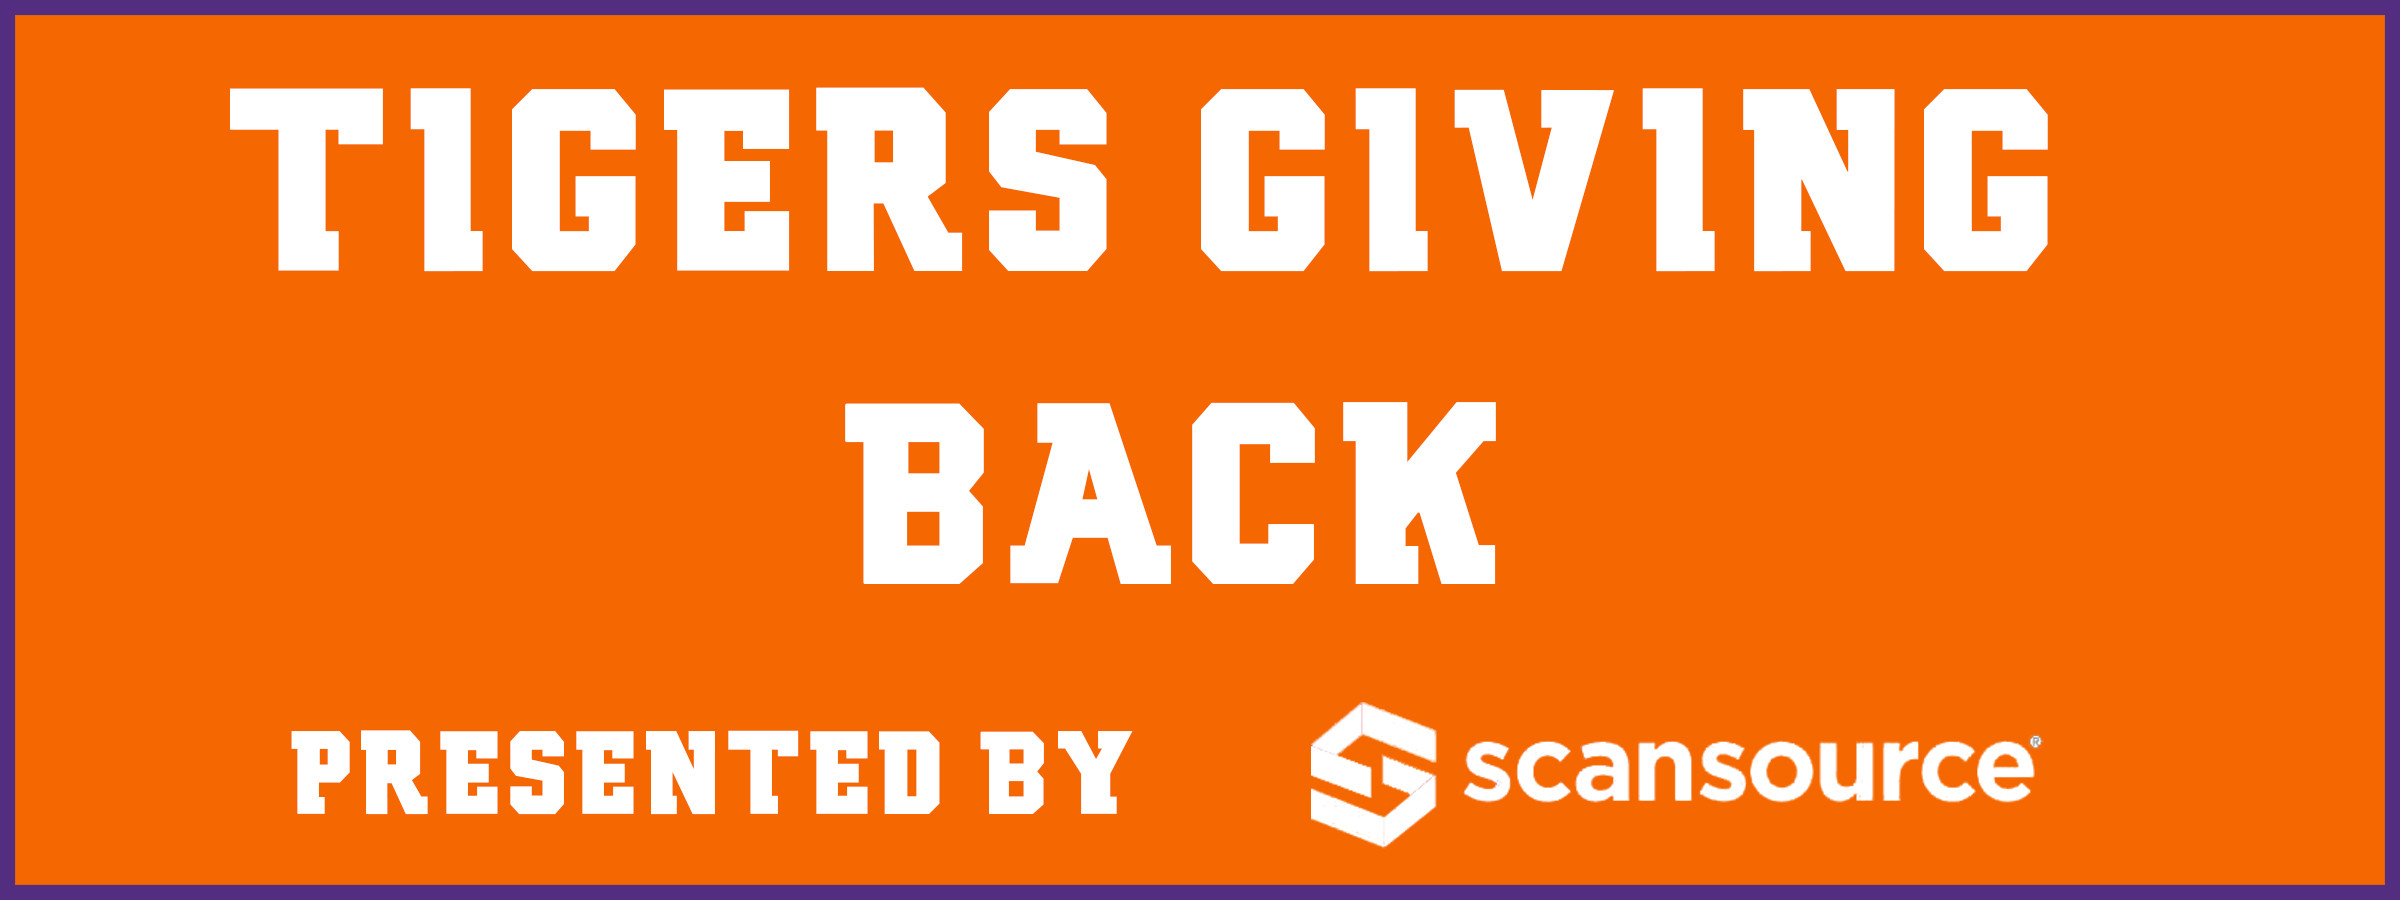 Tigers Giving Back Presented by ScanSource